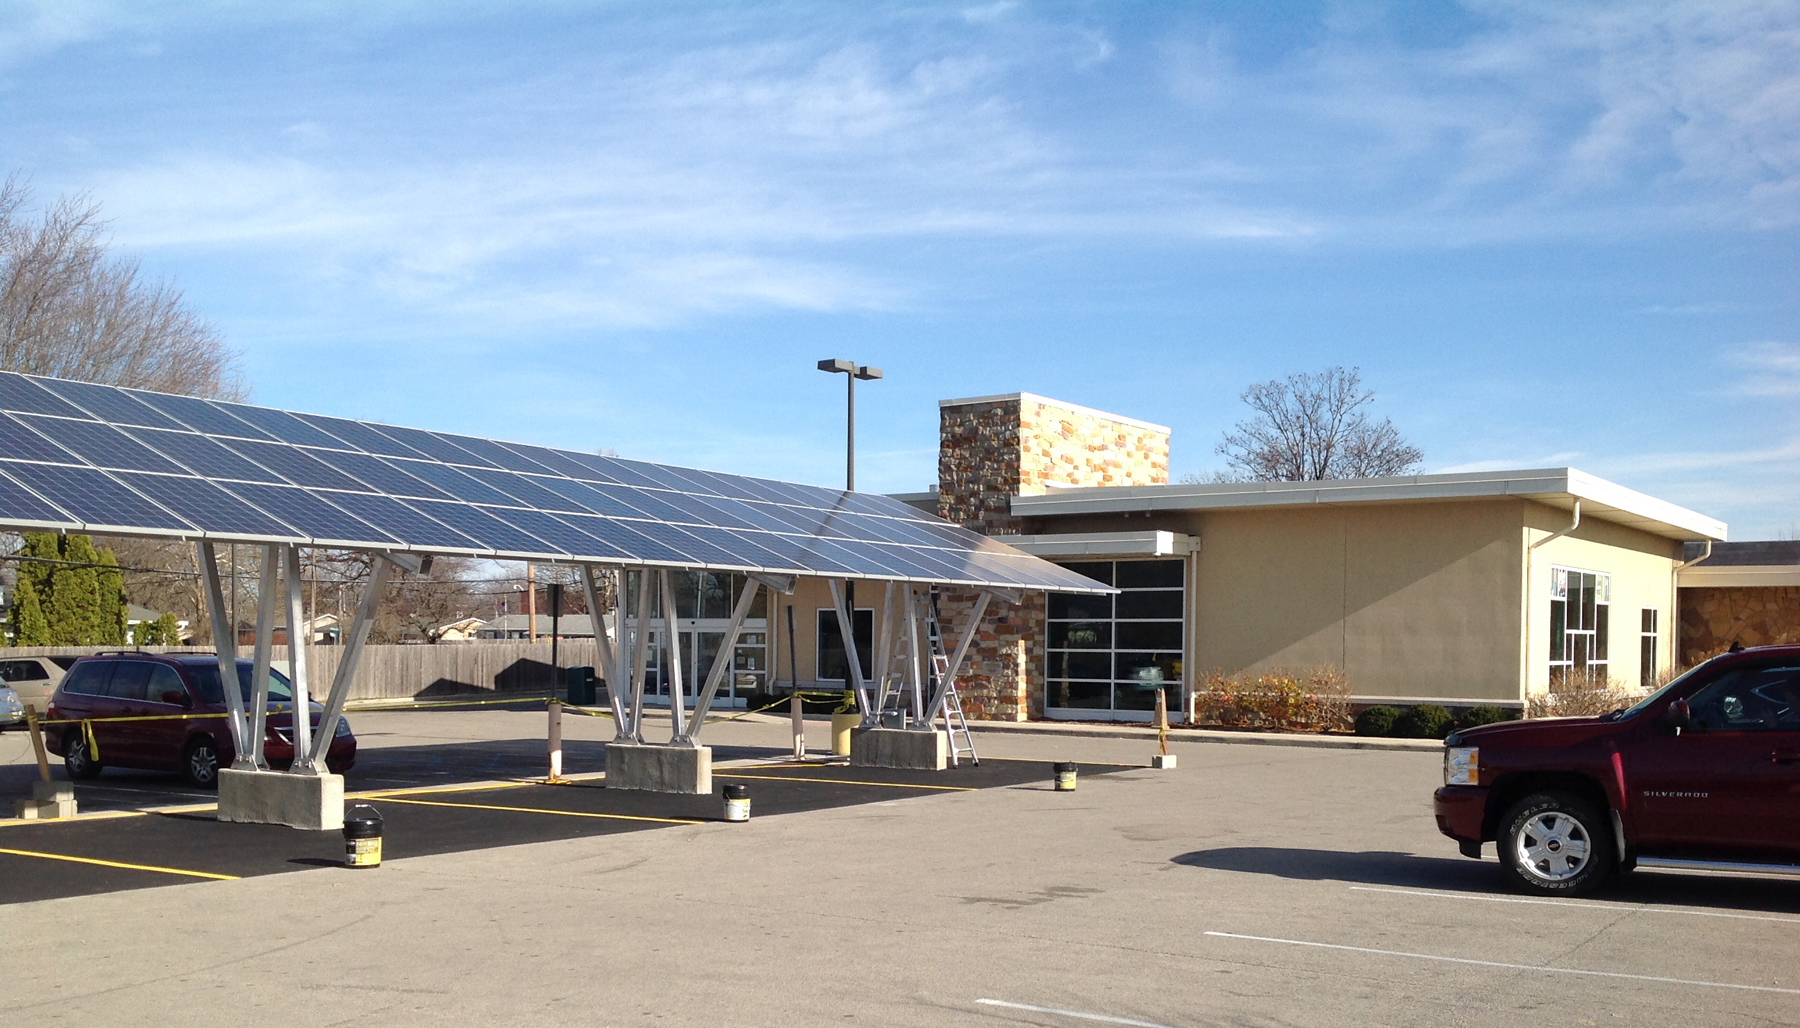 Ruoff Solar Kennedy Library Solar Carport Muncie Journal